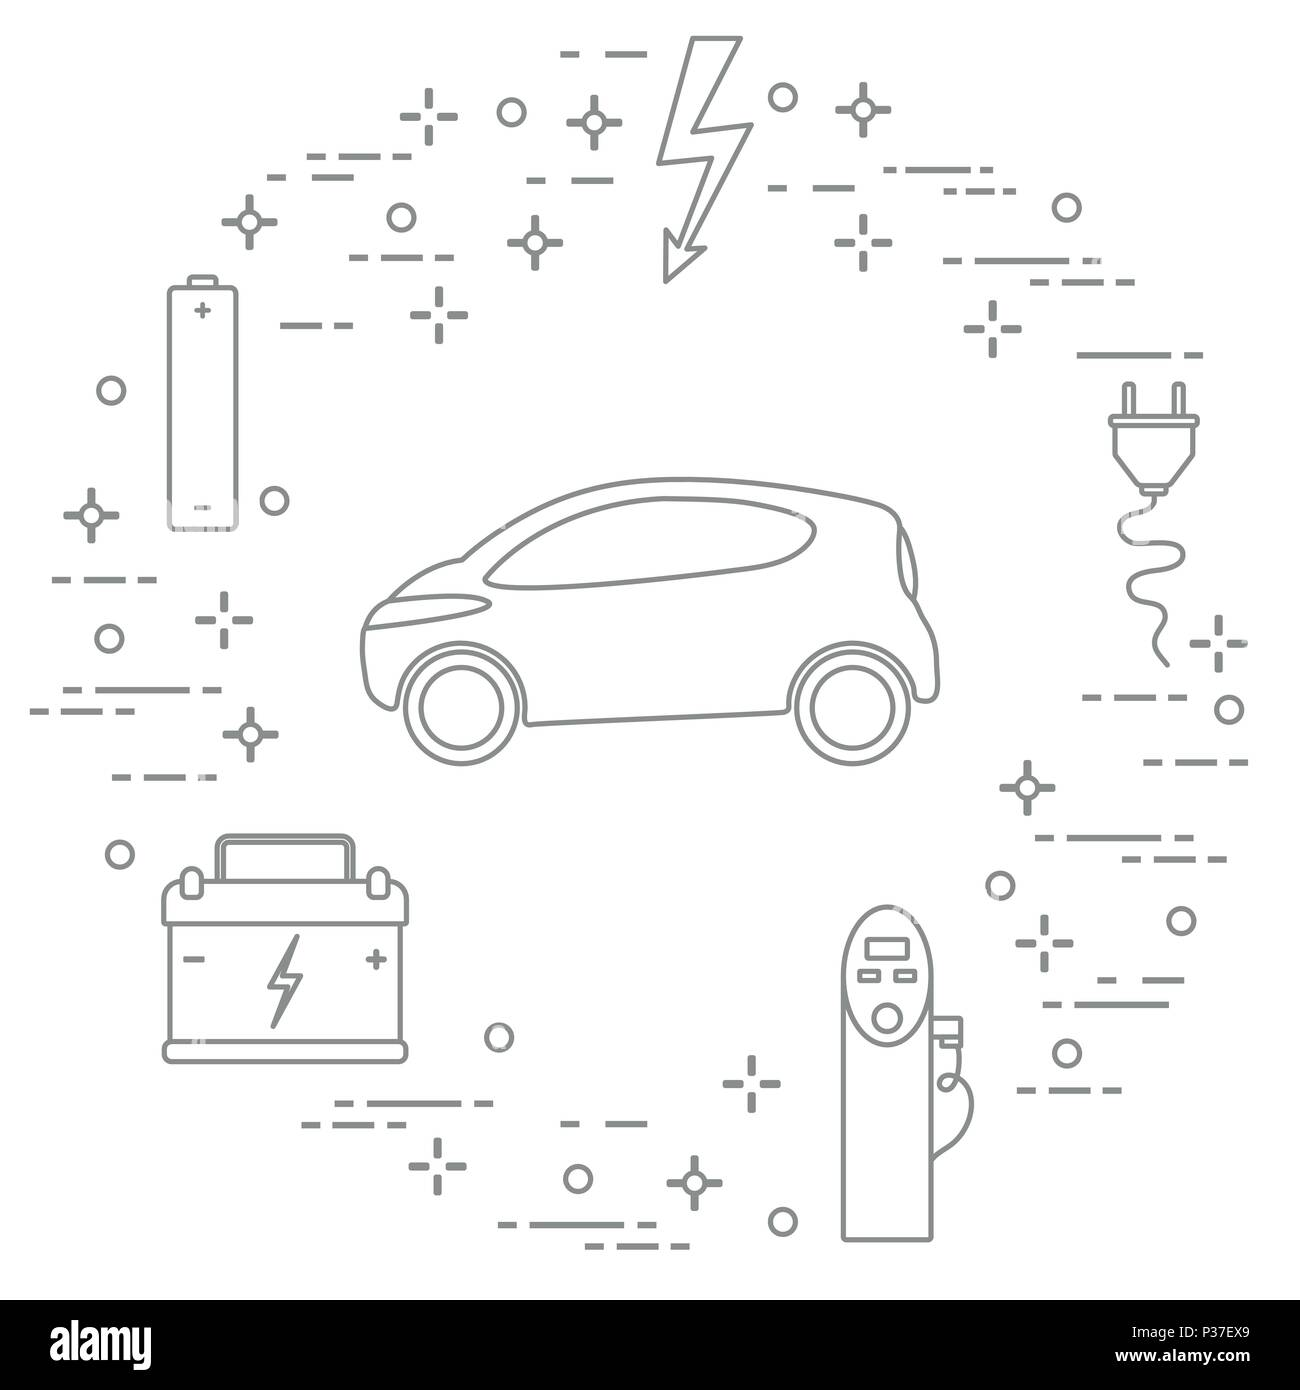 Electric Vehicle Charging Station Black And White Stock Photos Ev Stations Wiring Diagram Car Battery Electrical Safety Sign Cable Plug